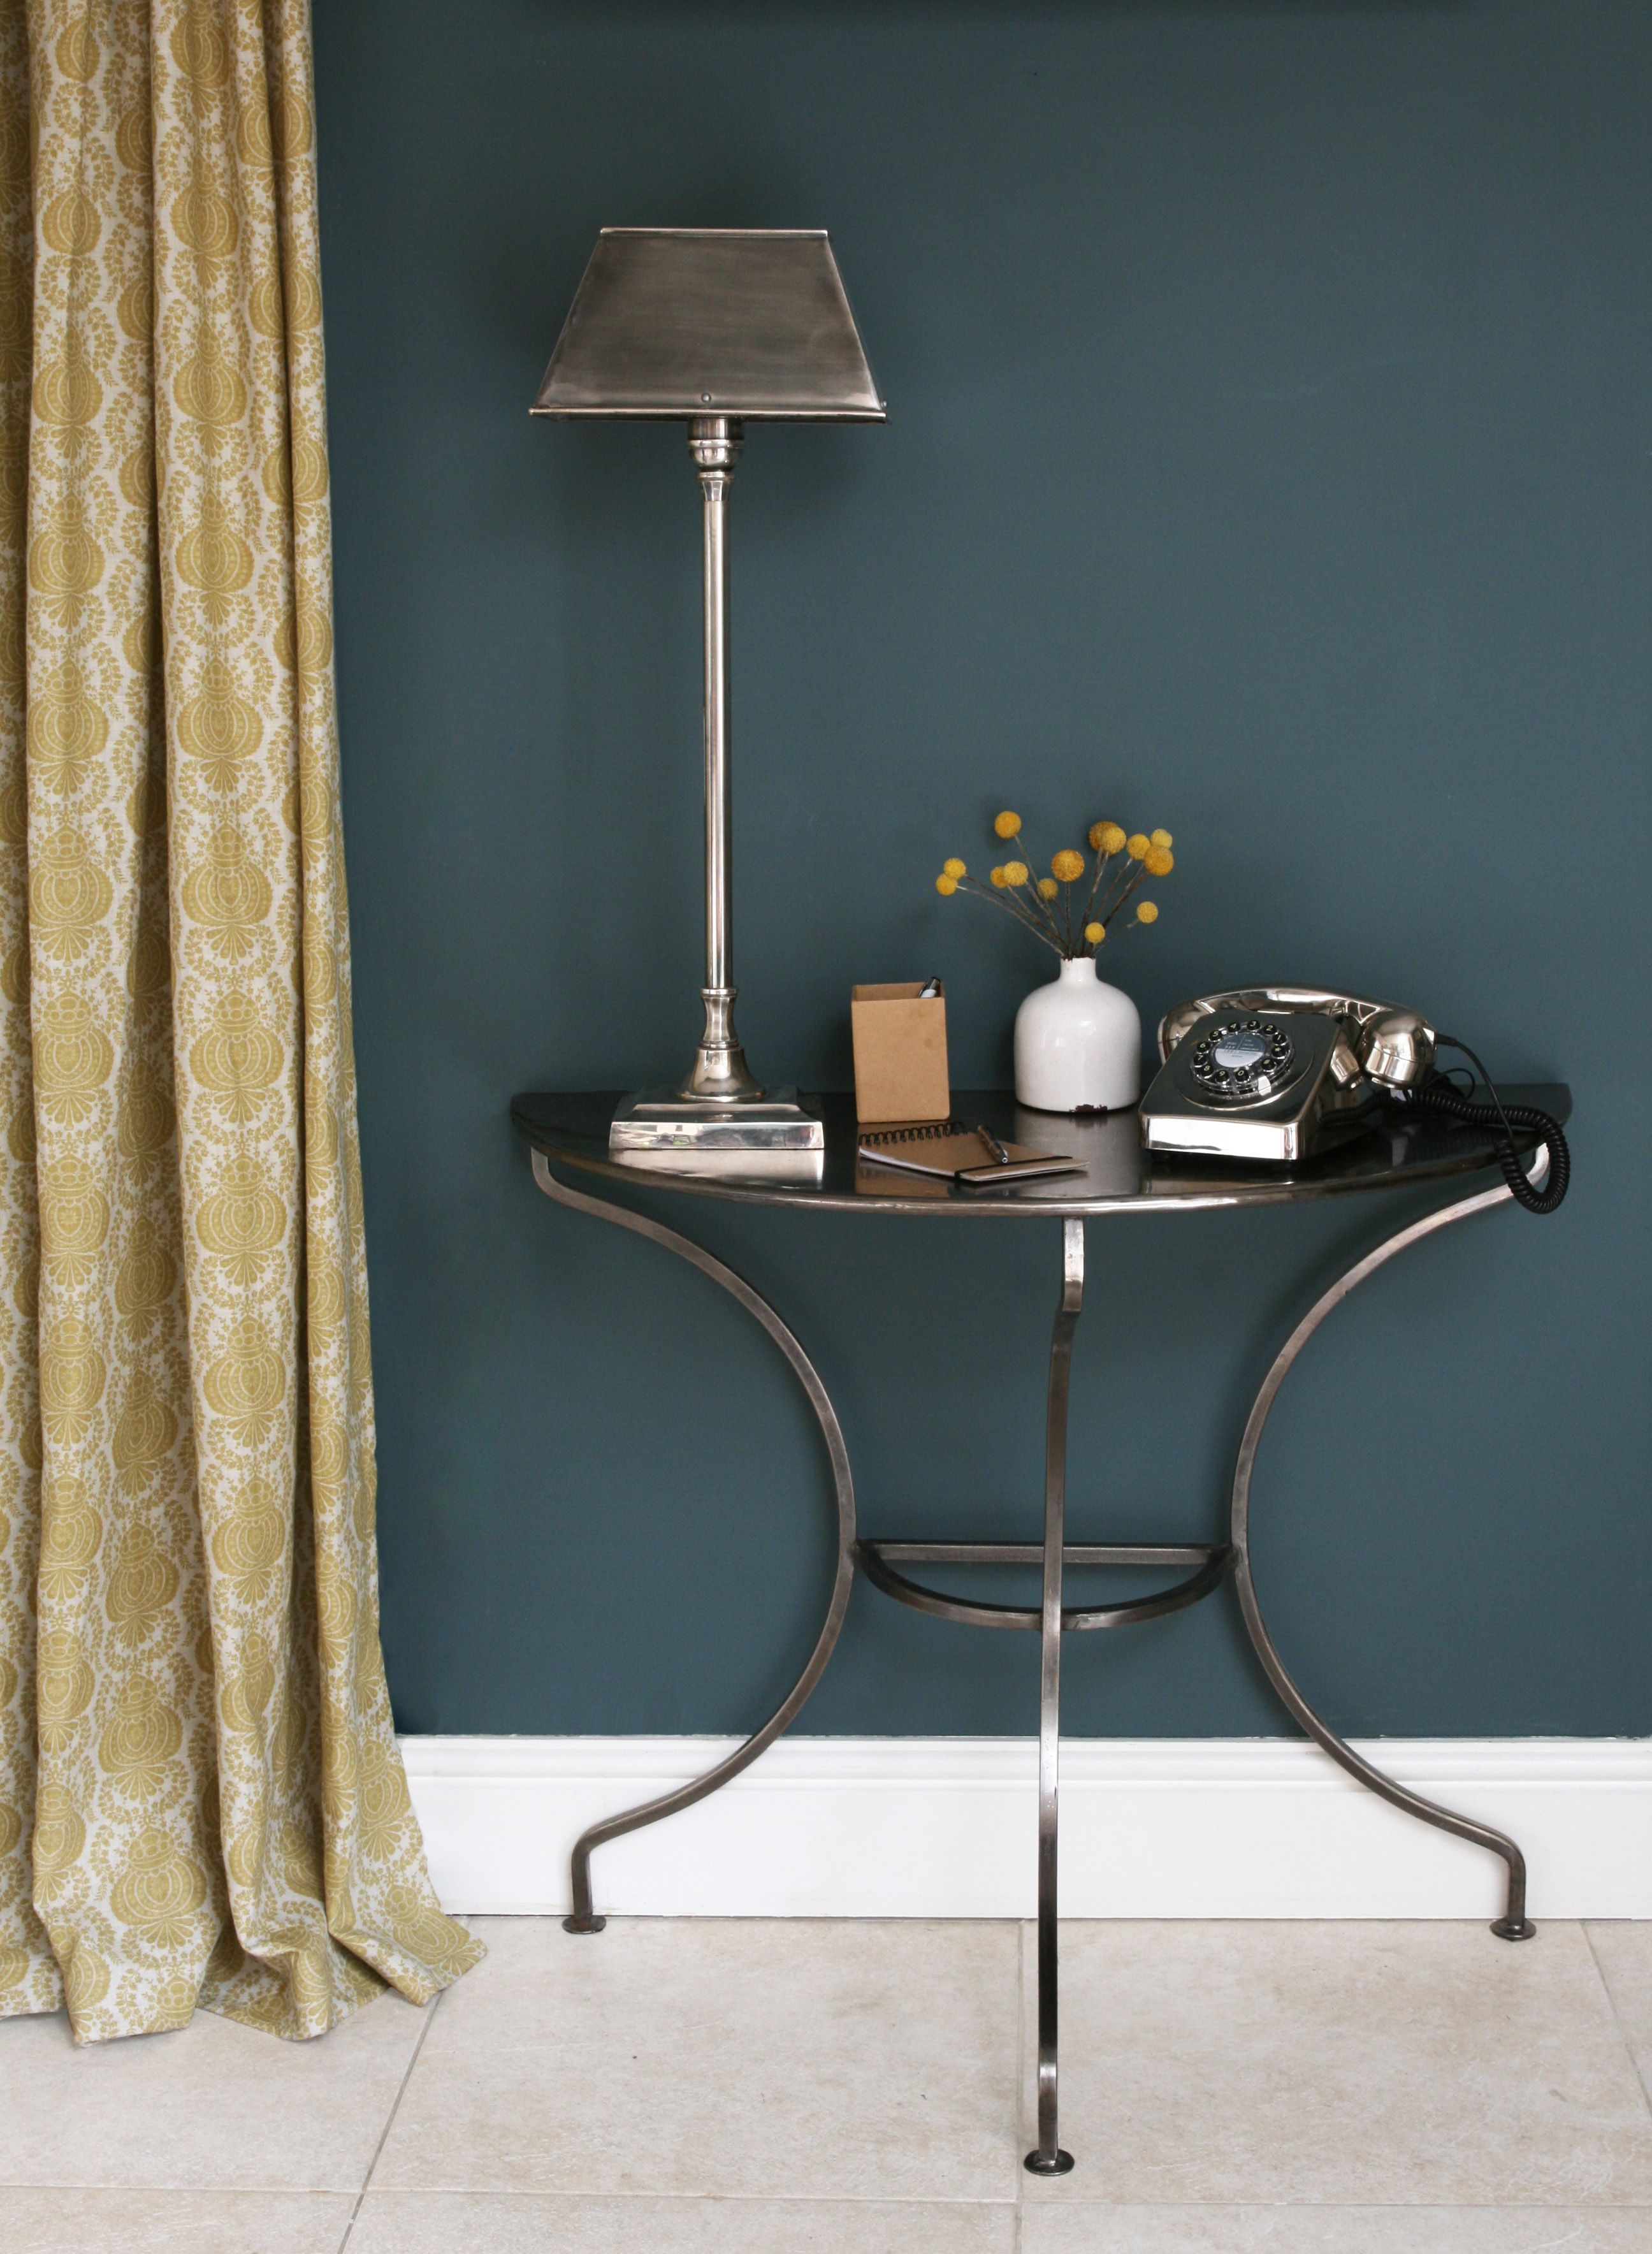 Margot Yellow perfectly complimenting Farrow & Ball's Inchyra Blue.